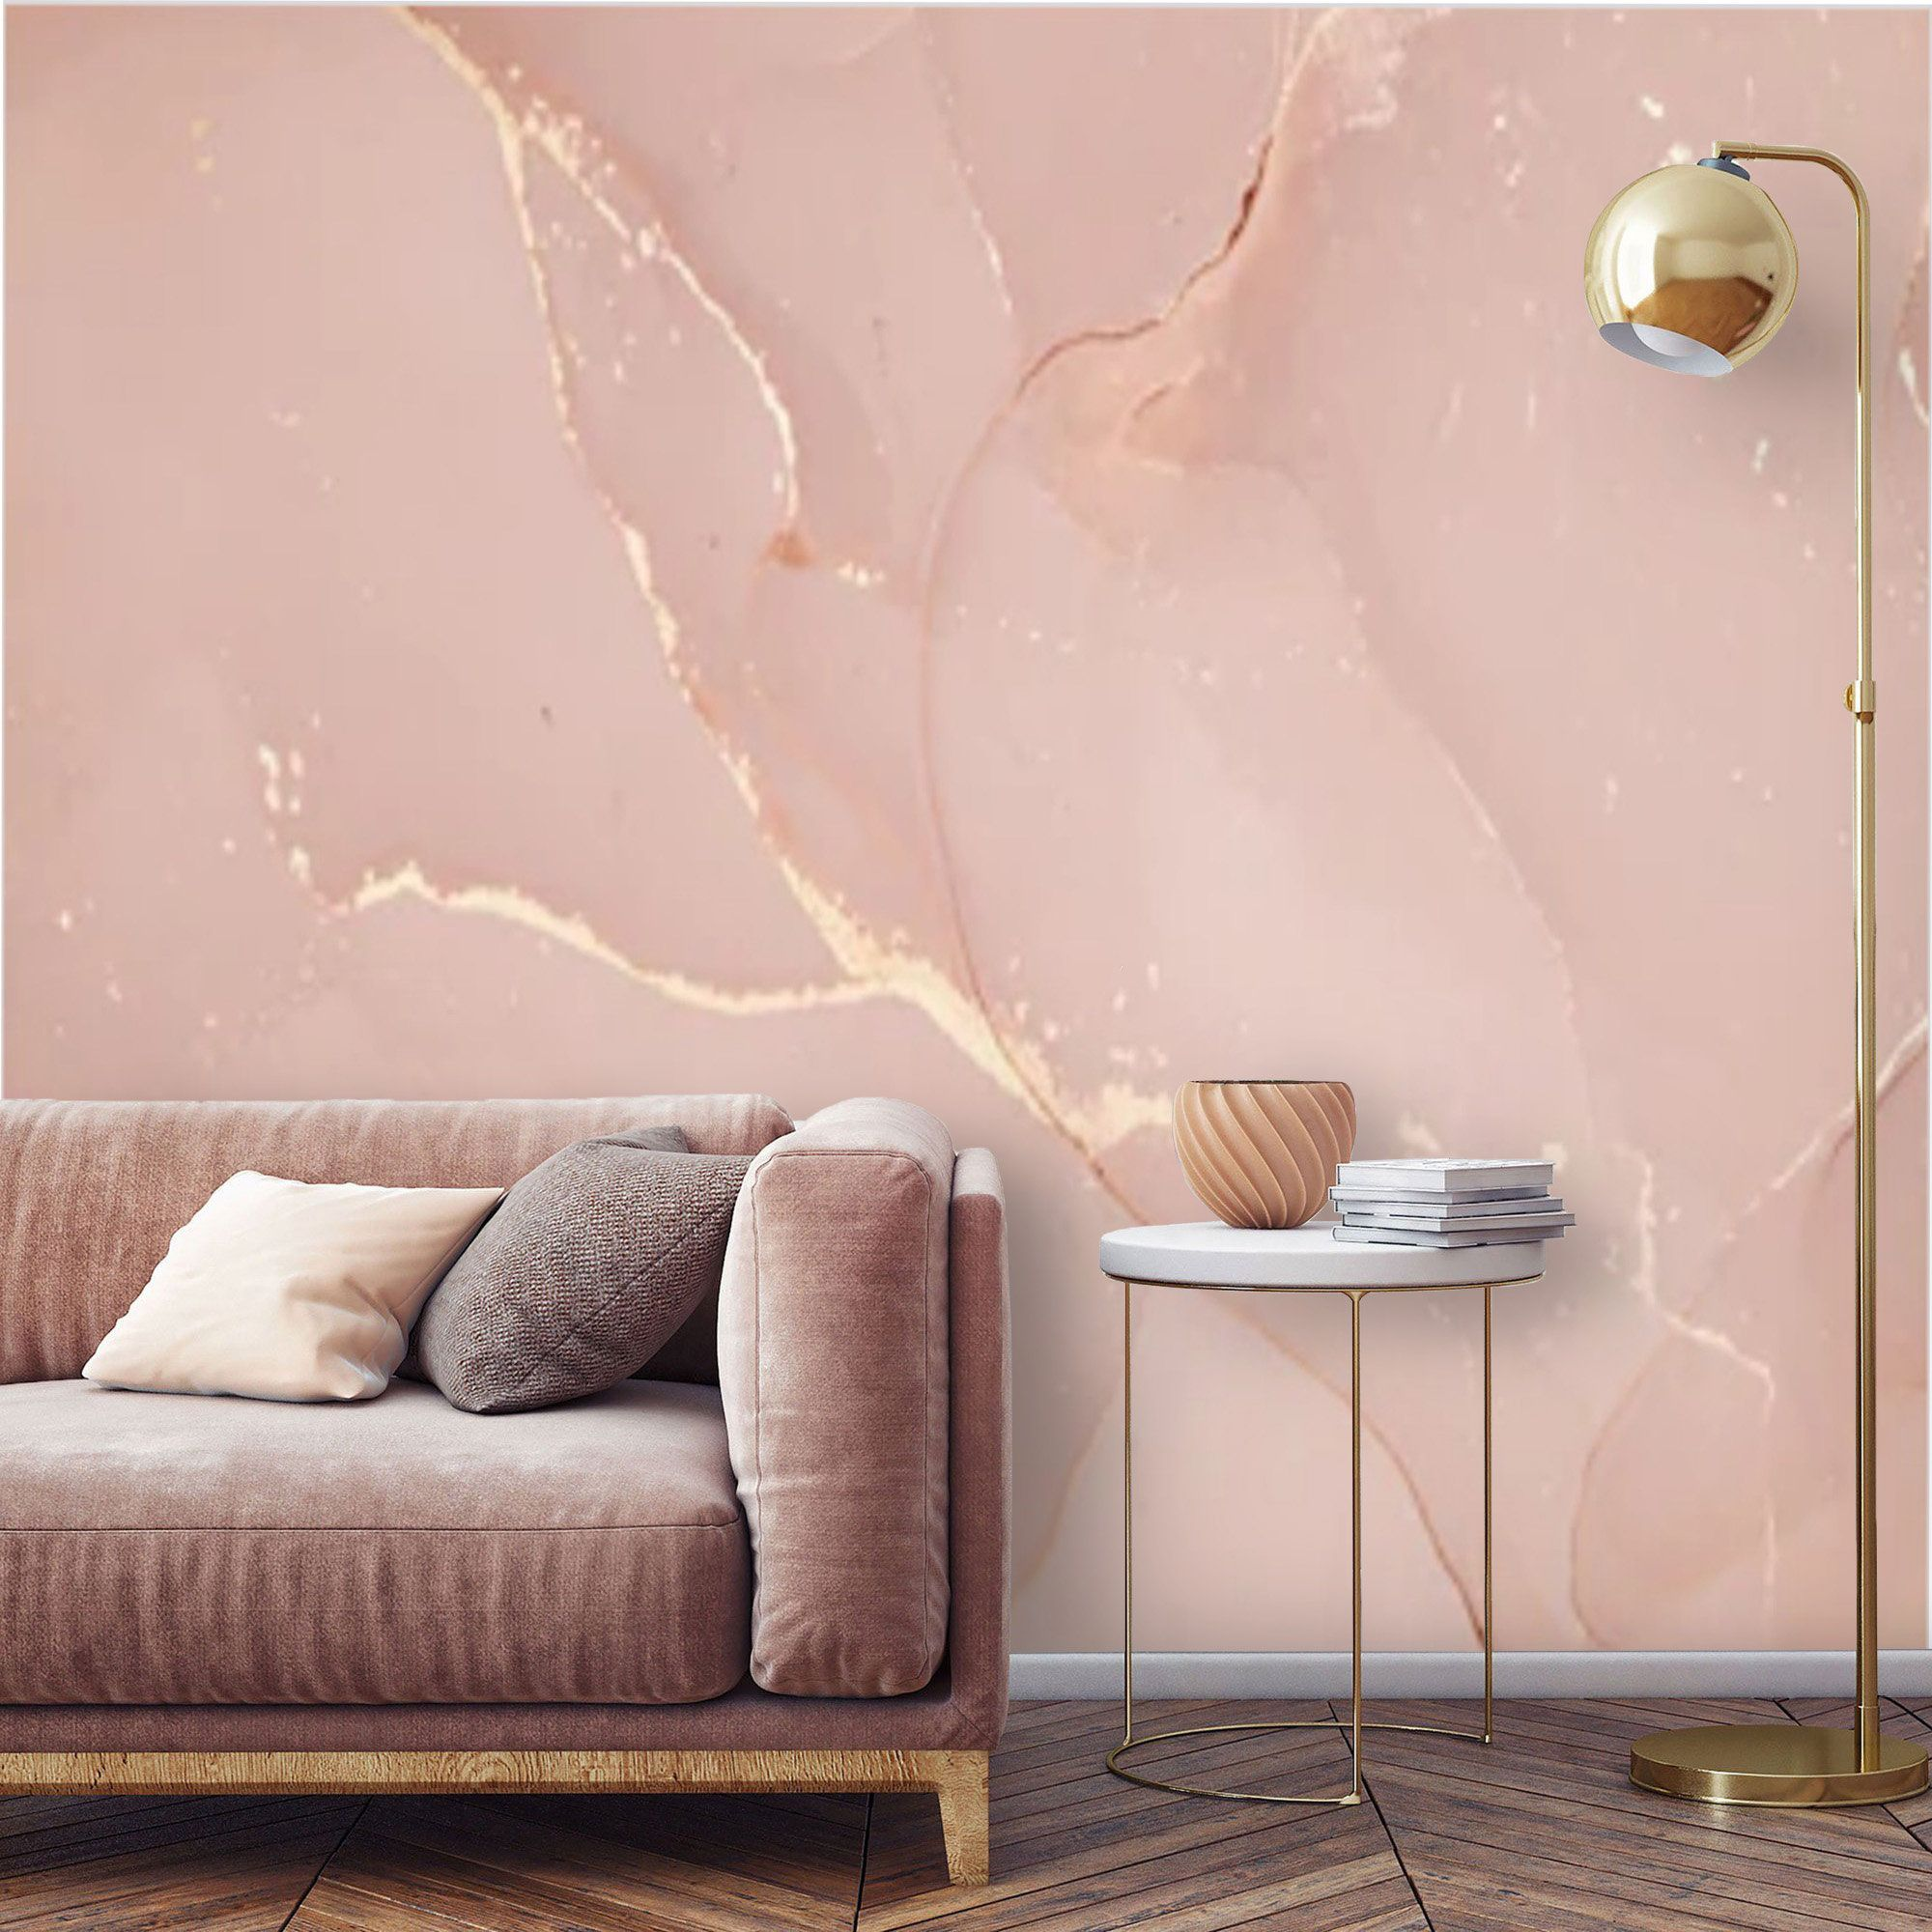 Peel And Stick Marble Pink Gold Wallpaper Mural Marble Self Etsy In 2021 Pink And Gold Wallpaper Gold Wallpaper Wallpaper Accent Wall